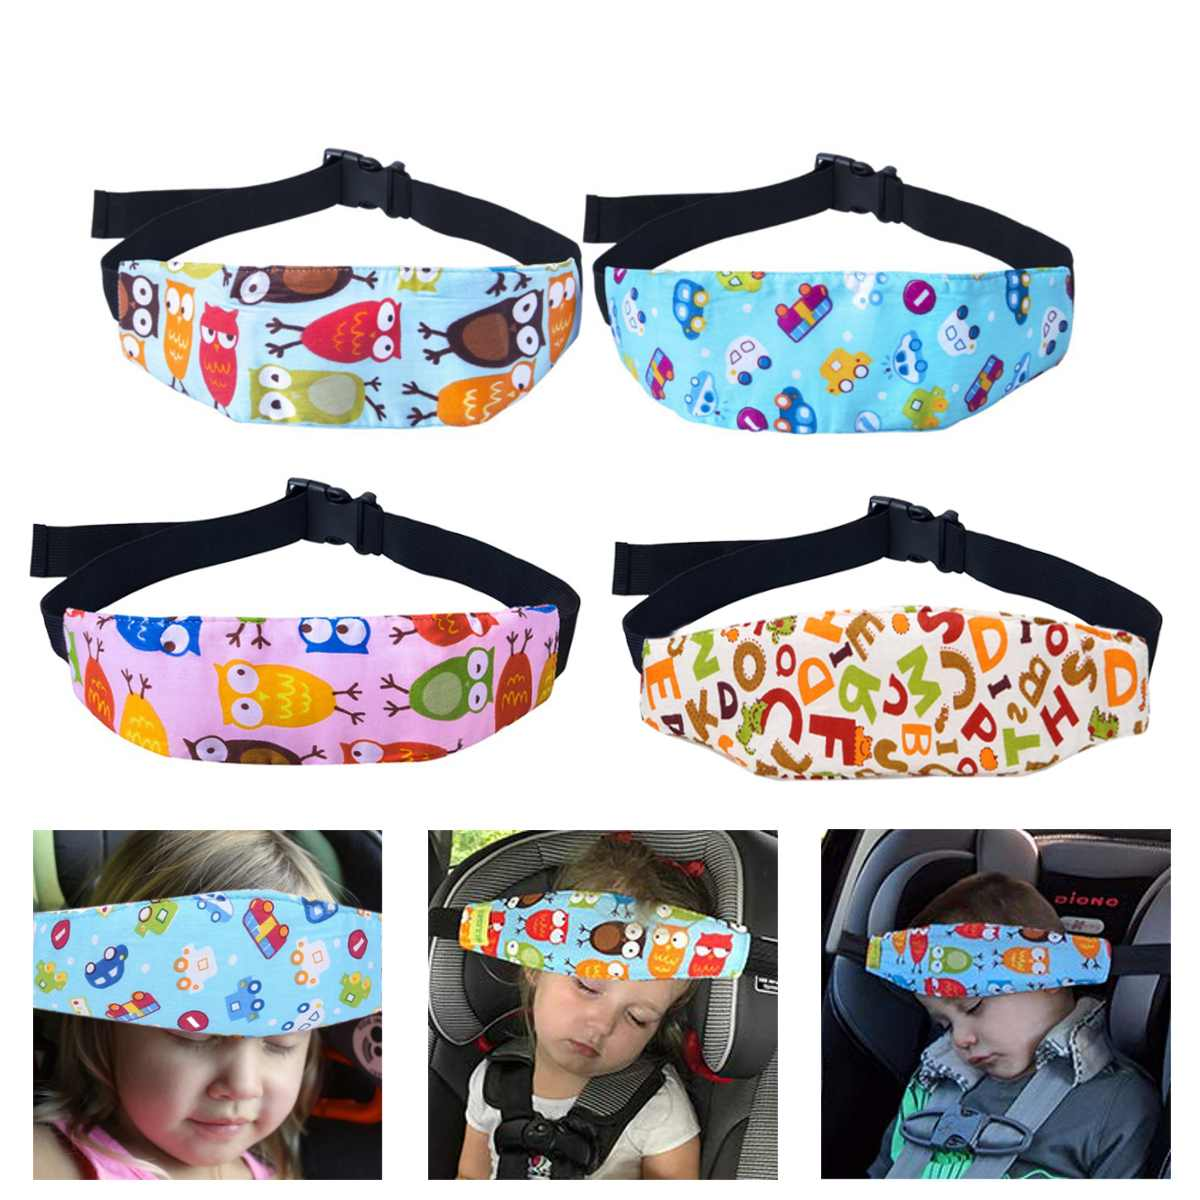 Safety Car Seat Sleep Nap Aid Child Kid Head Support Holder Protector Belt Stroller